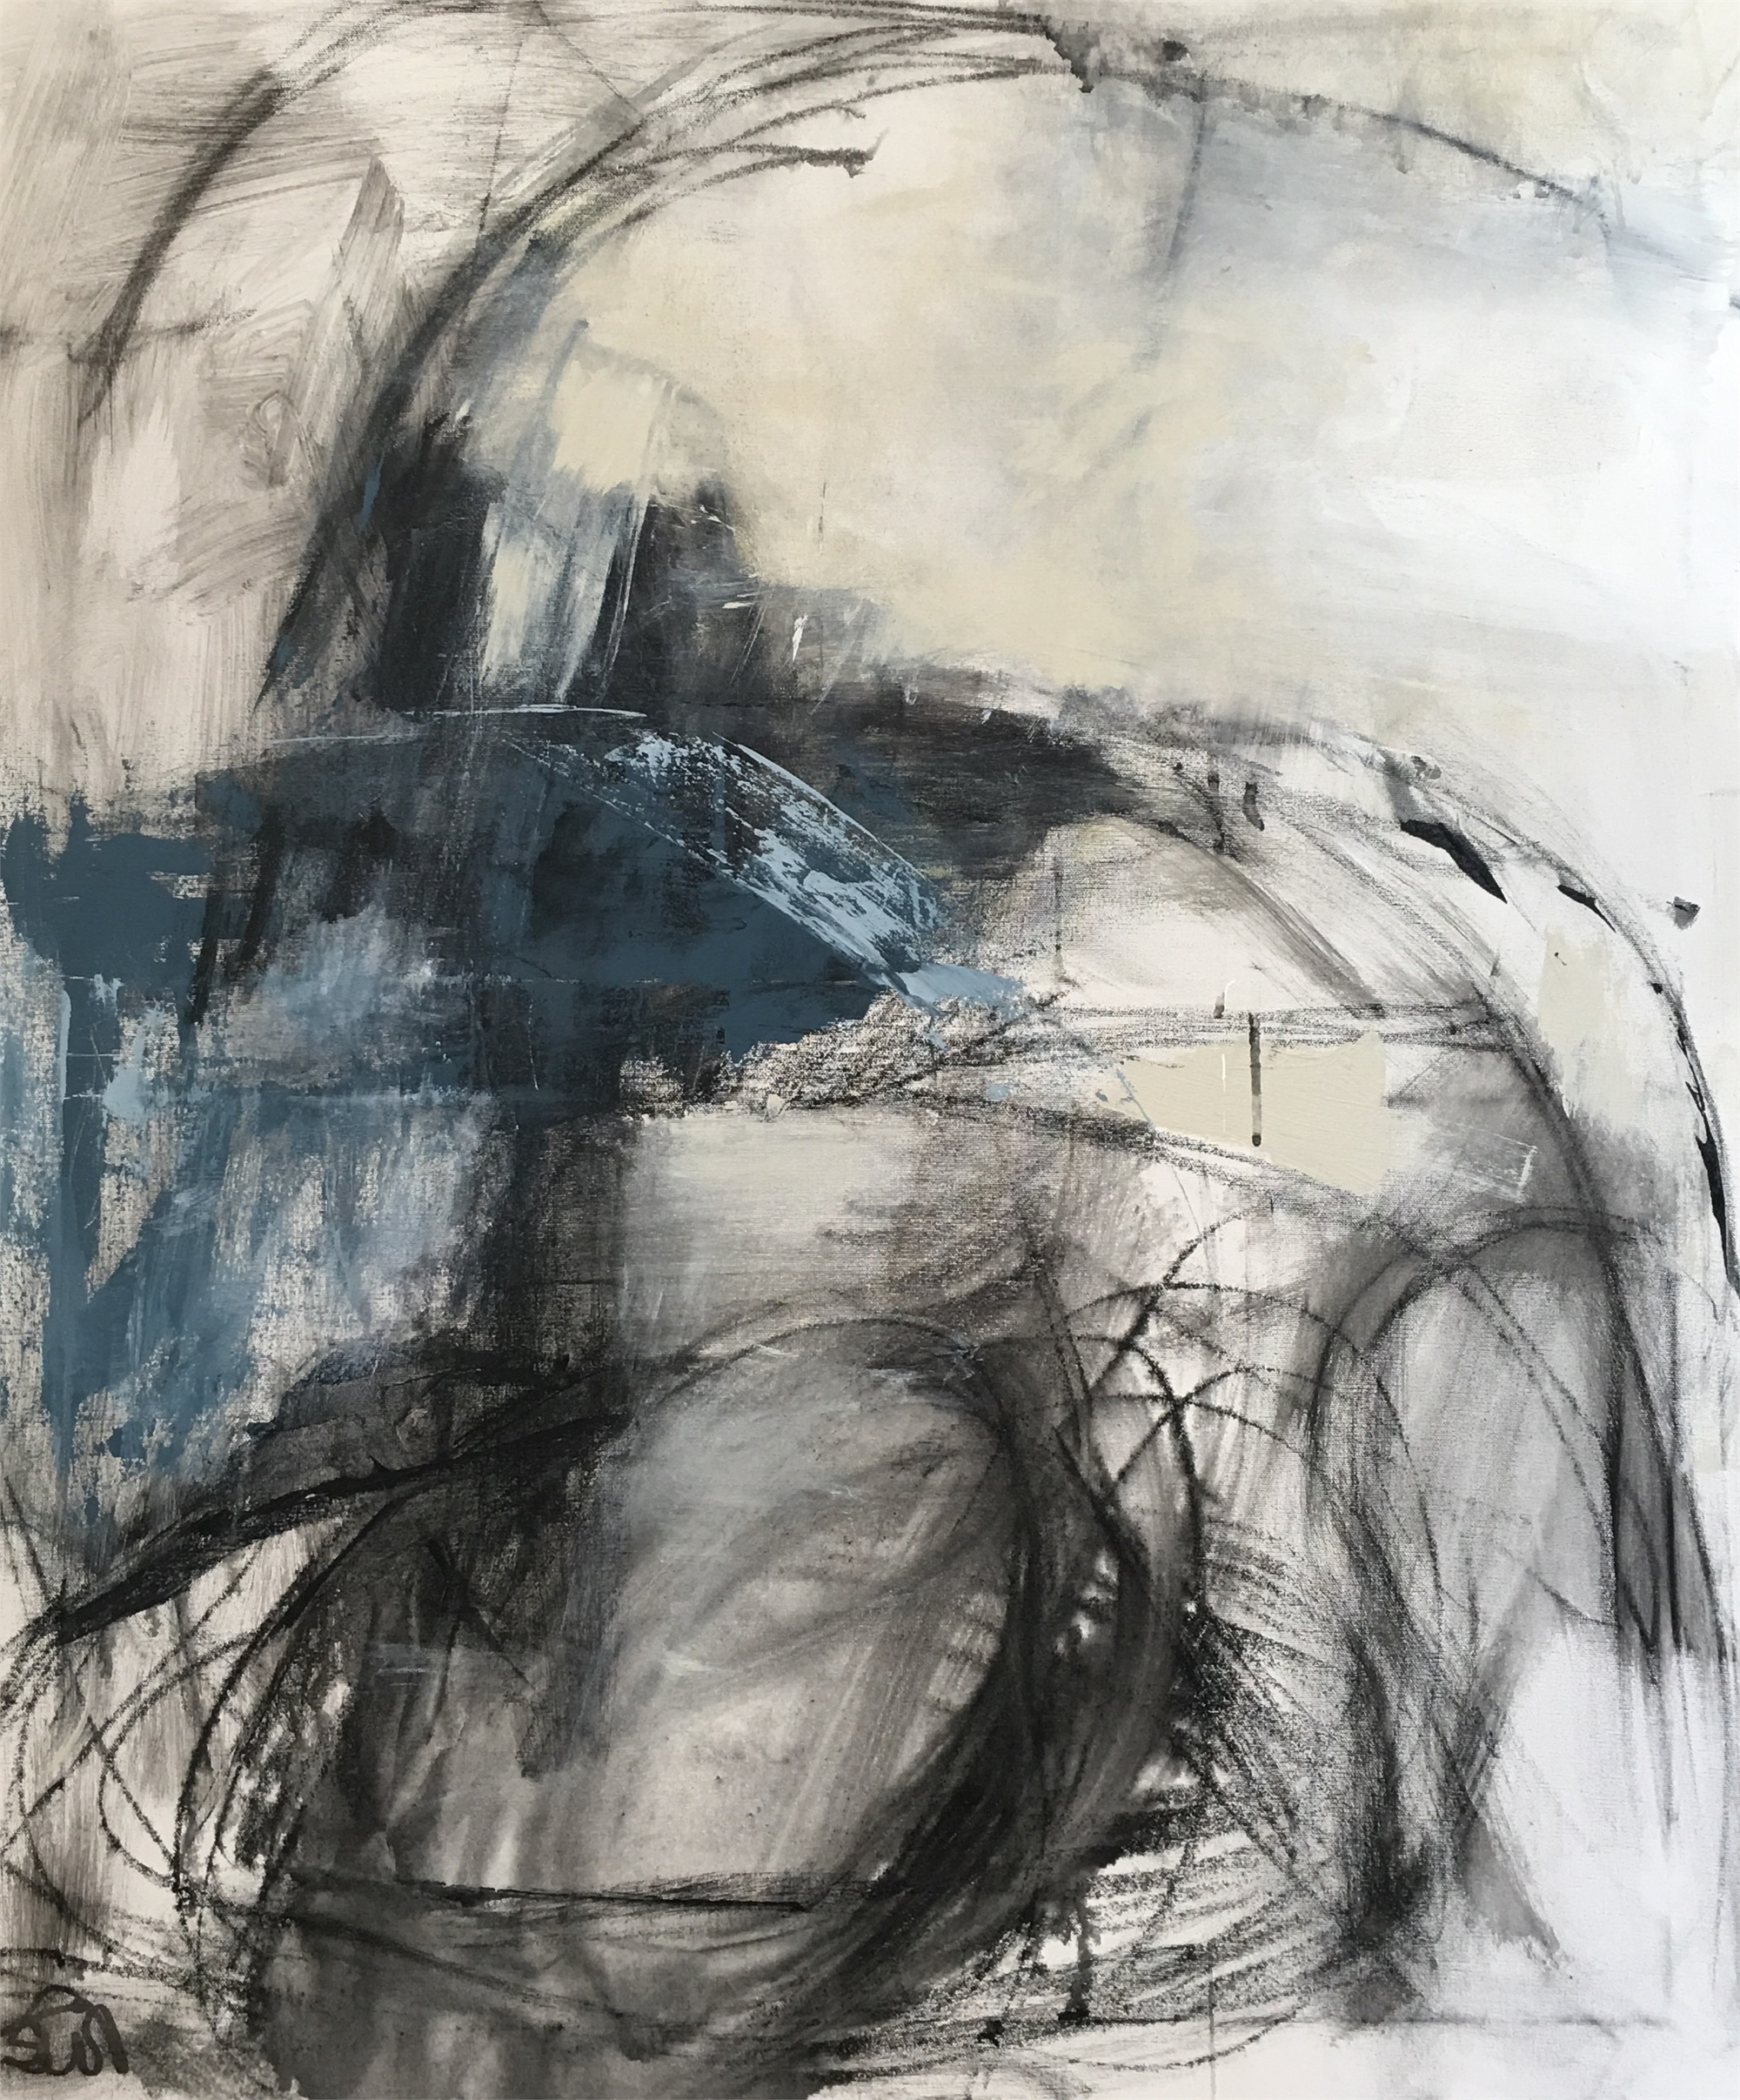 Study in Movement by Susan Altman